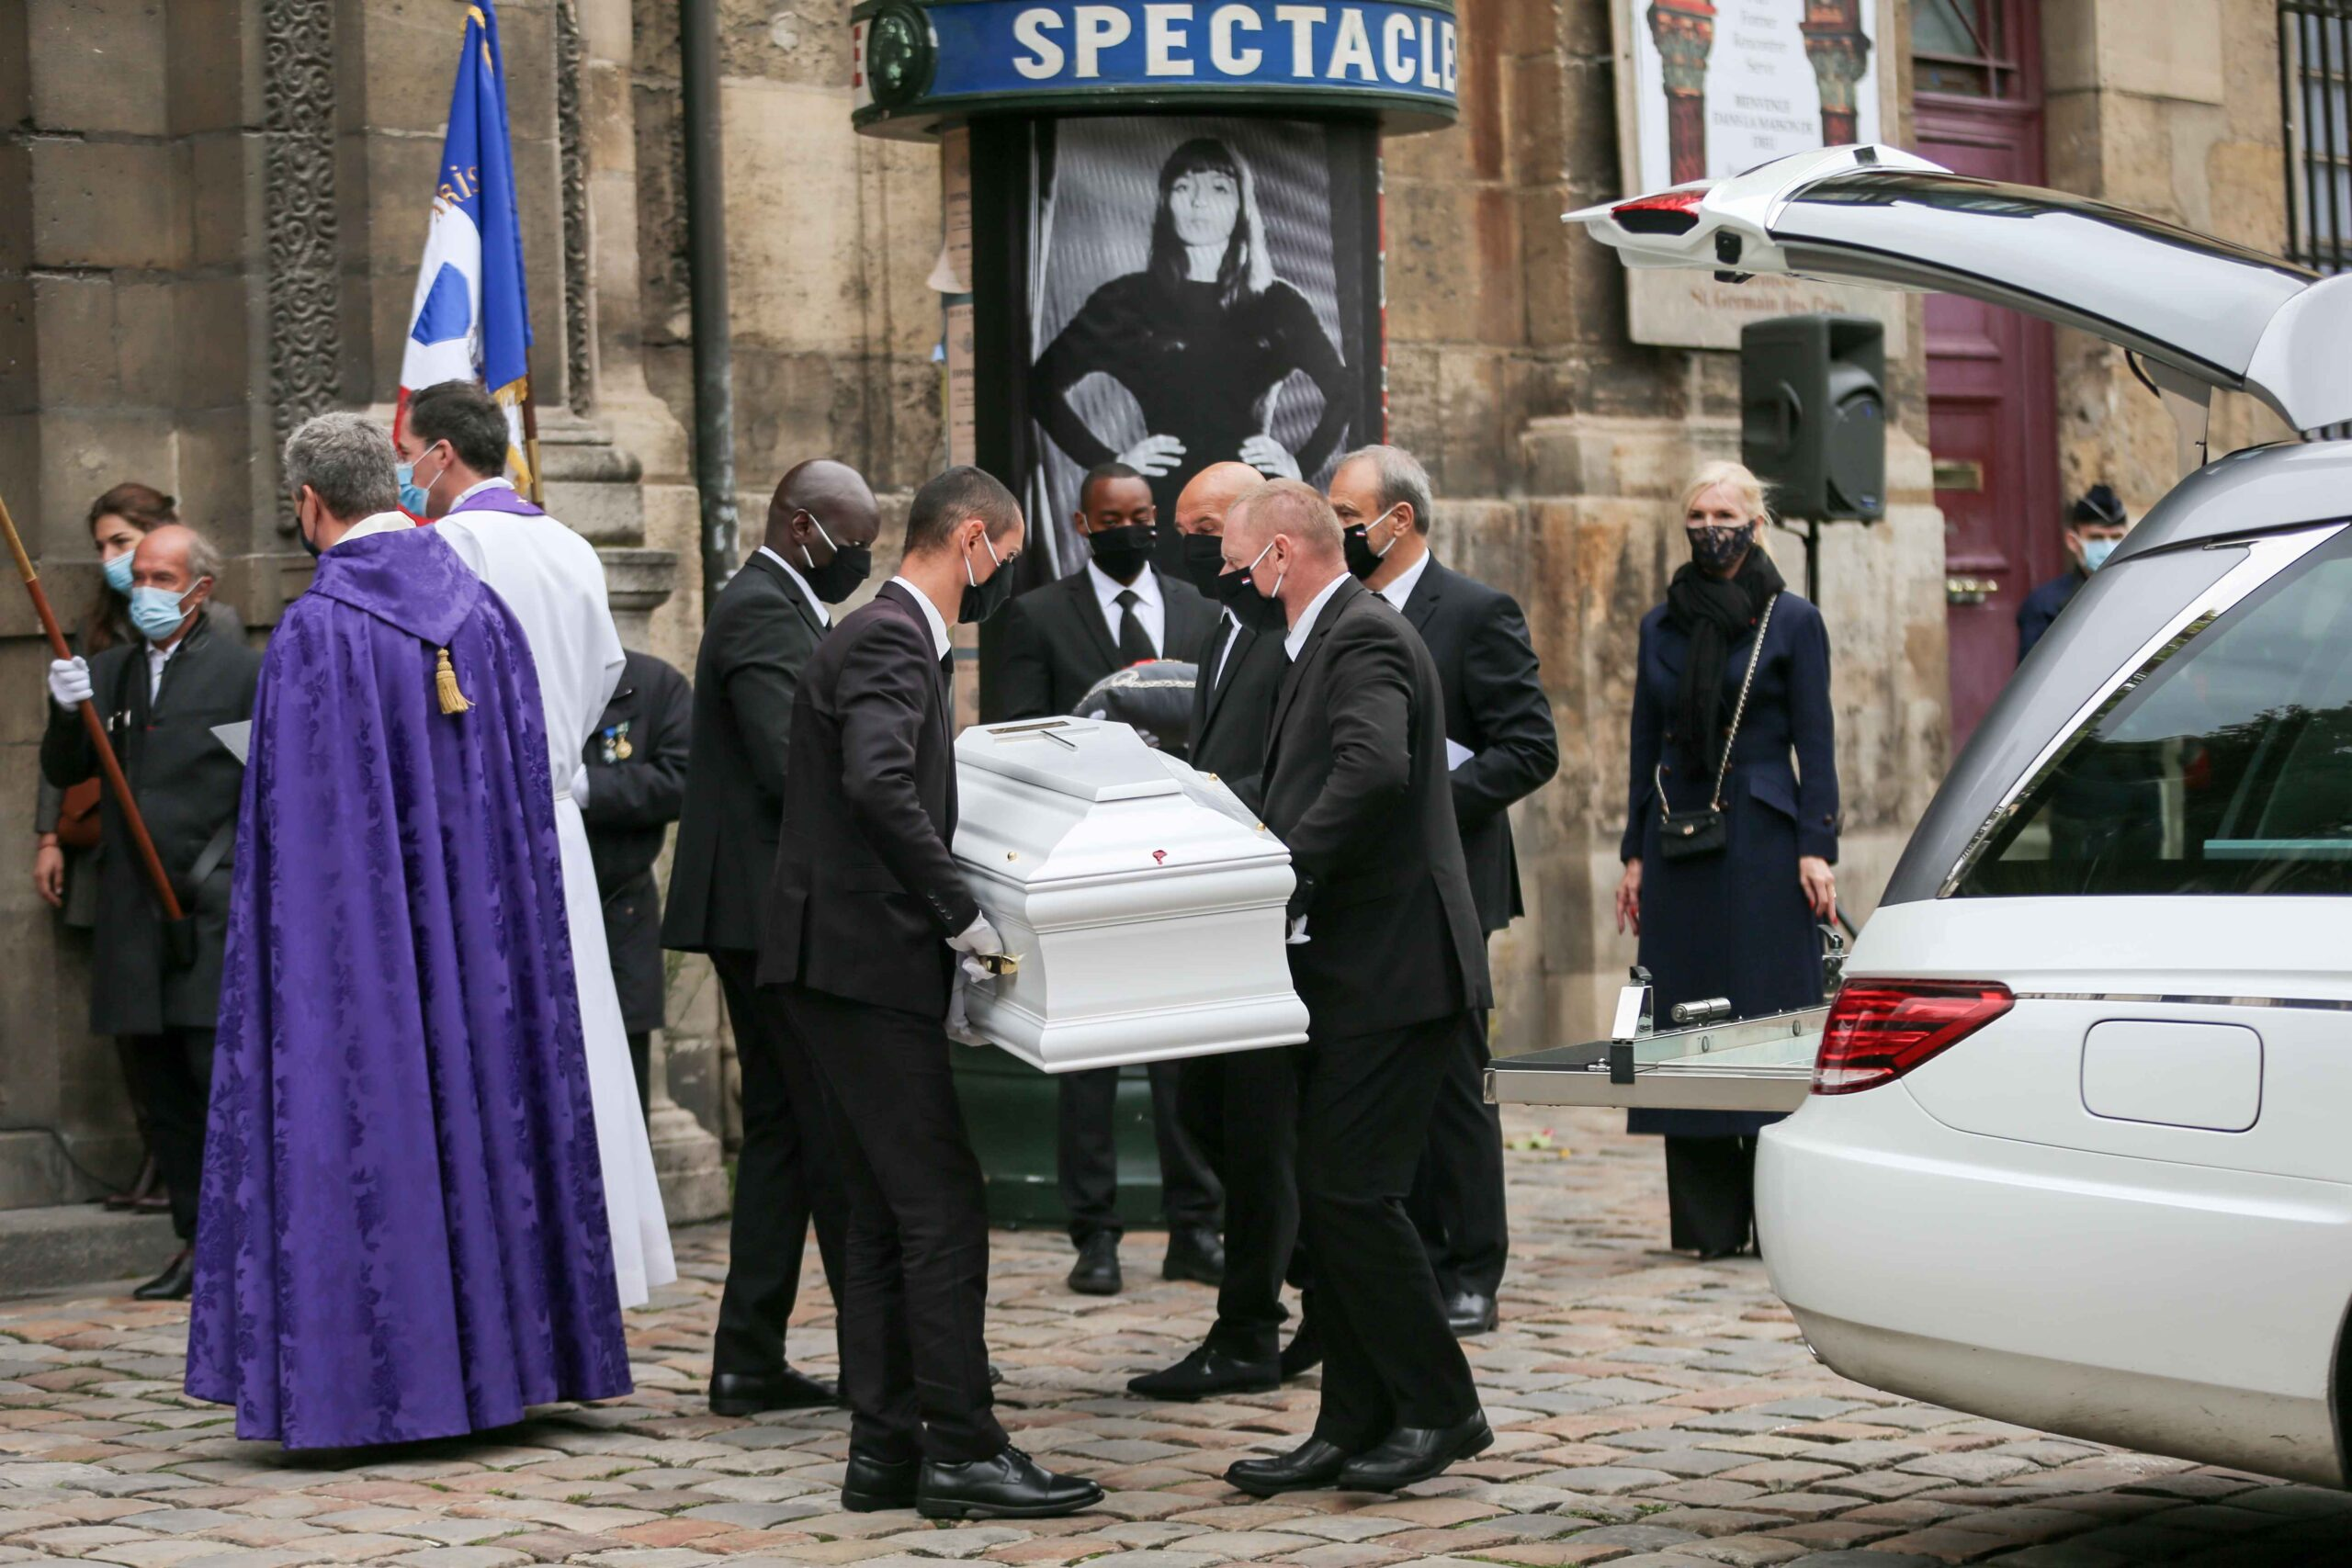 Pallbearers carry  the coffin of French singer Juliette Greco during her funeral ceremony at the Saint-Germain-des-Pres church in Paris, on October 5, 2020. Legendary French singer Juliette Greco, whose career spanned over half a century, died aged 93, on